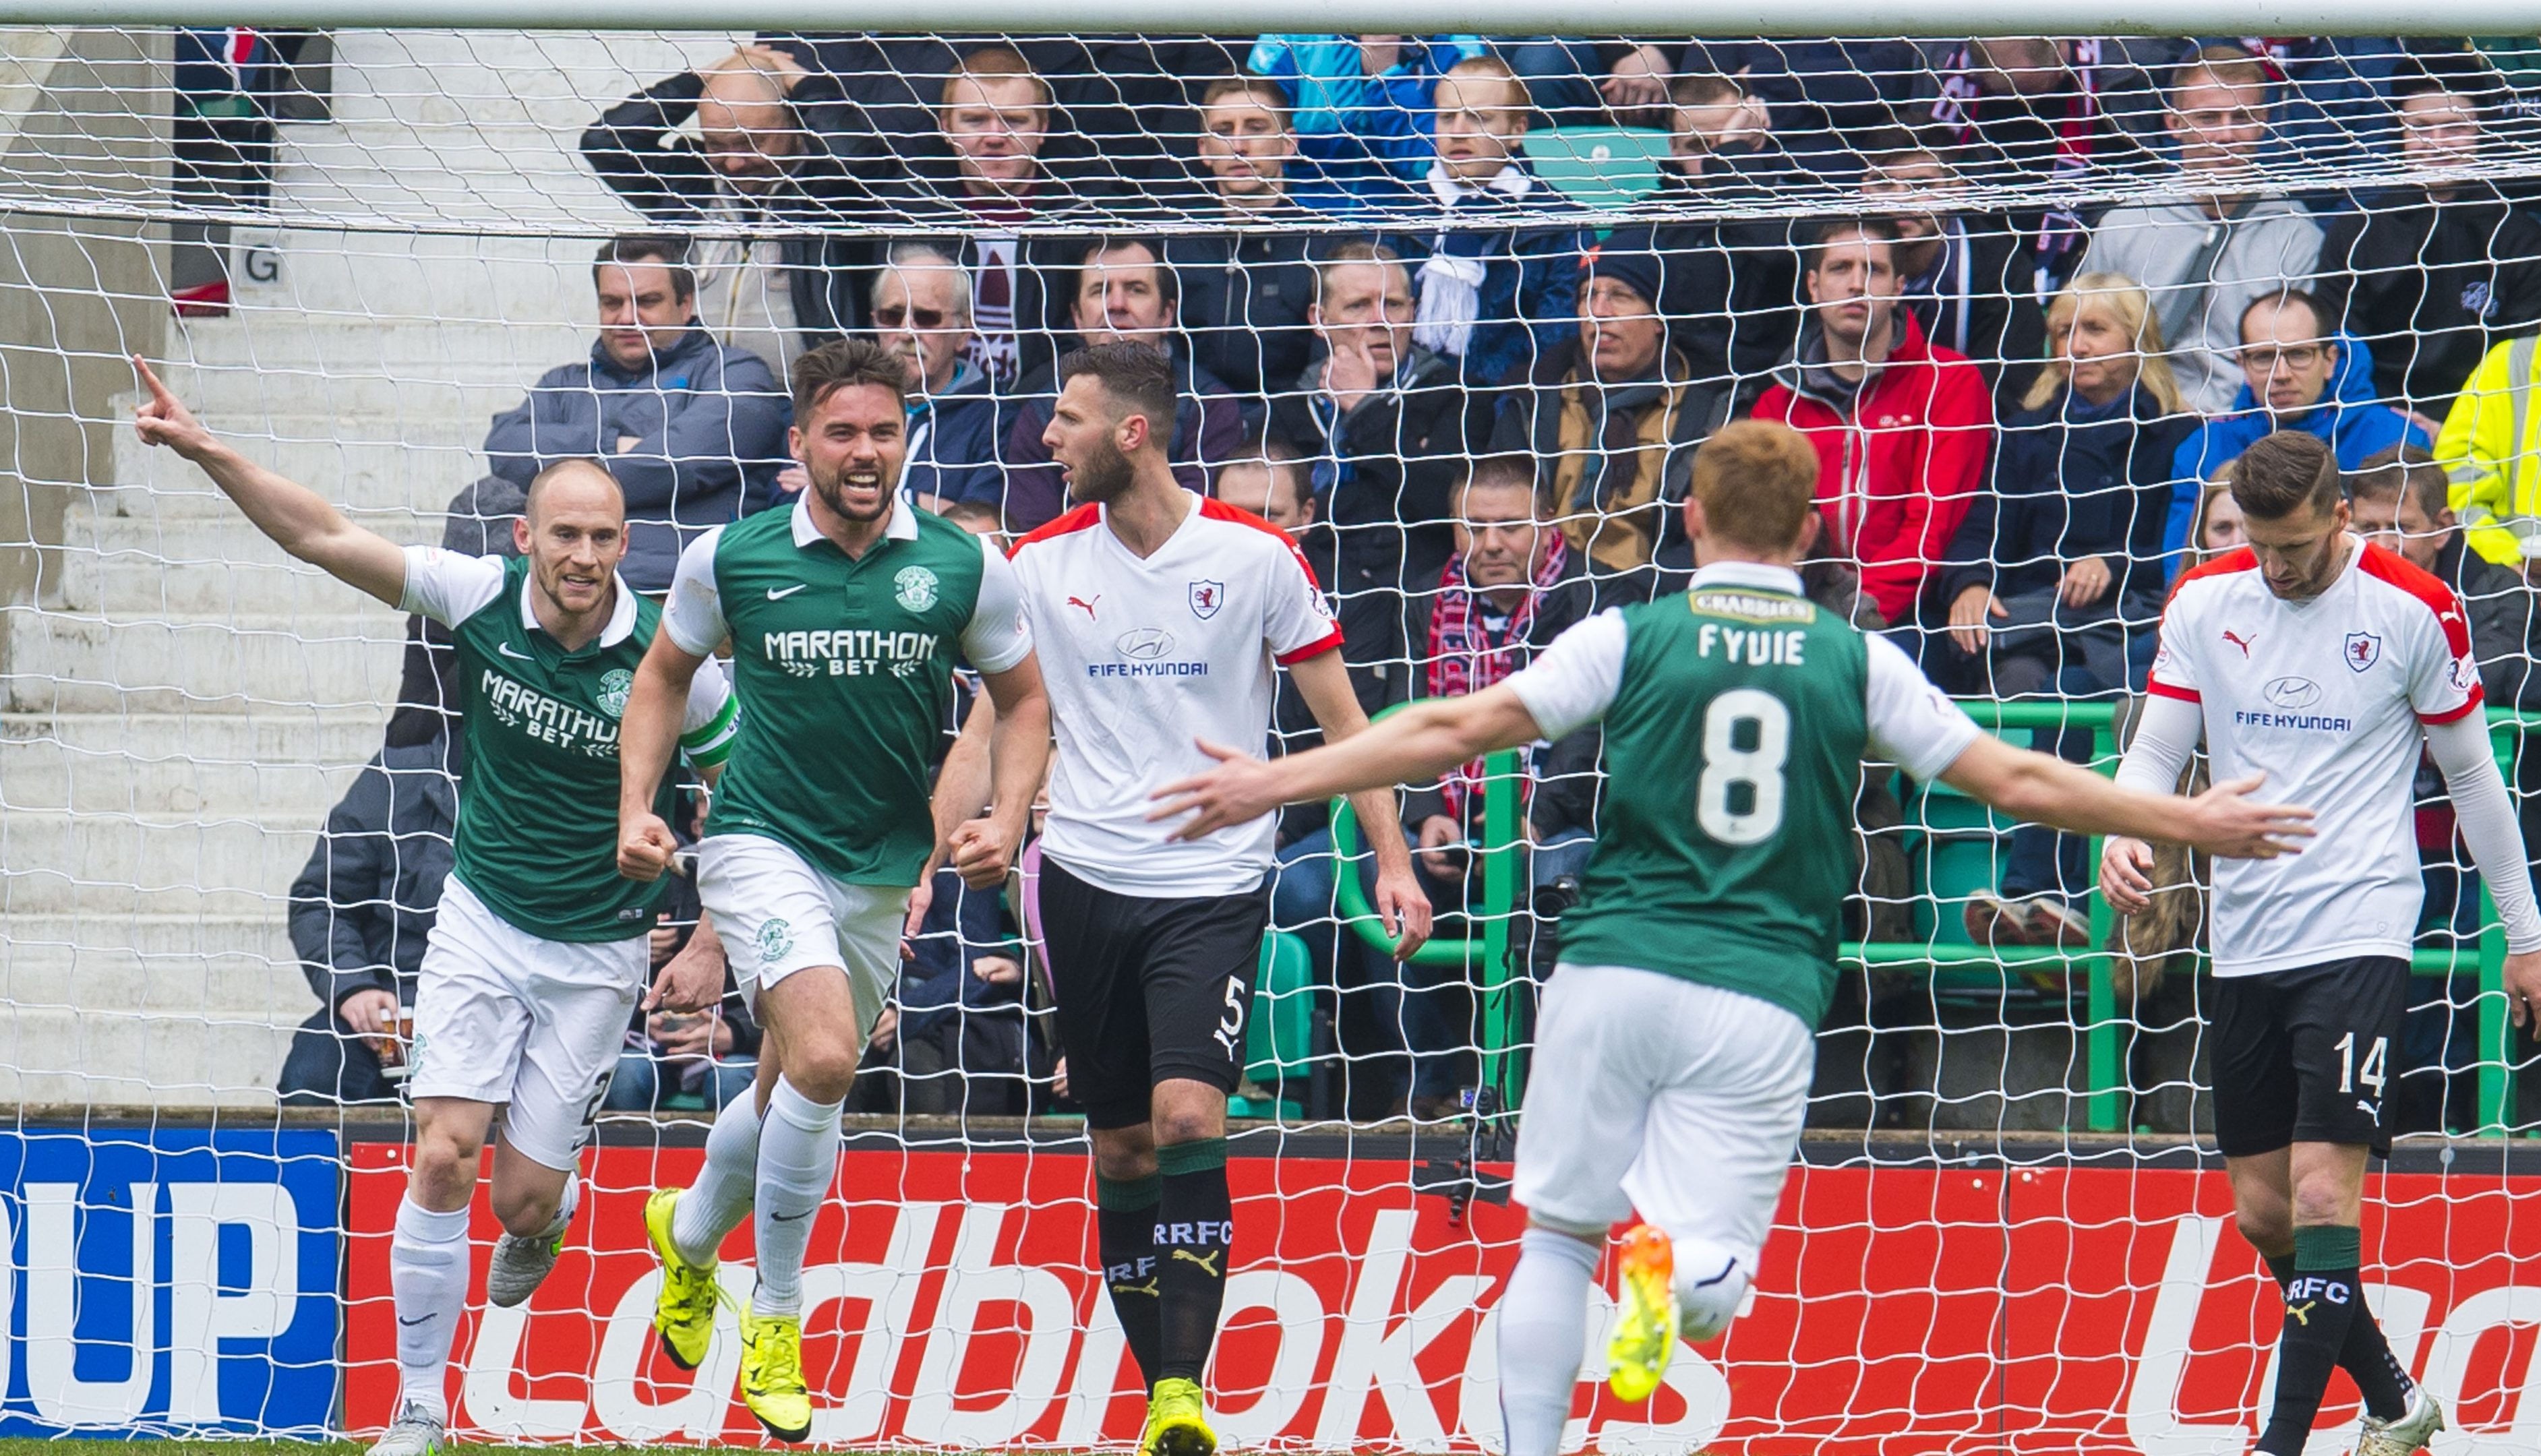 Hibs players celebrate their second goal.